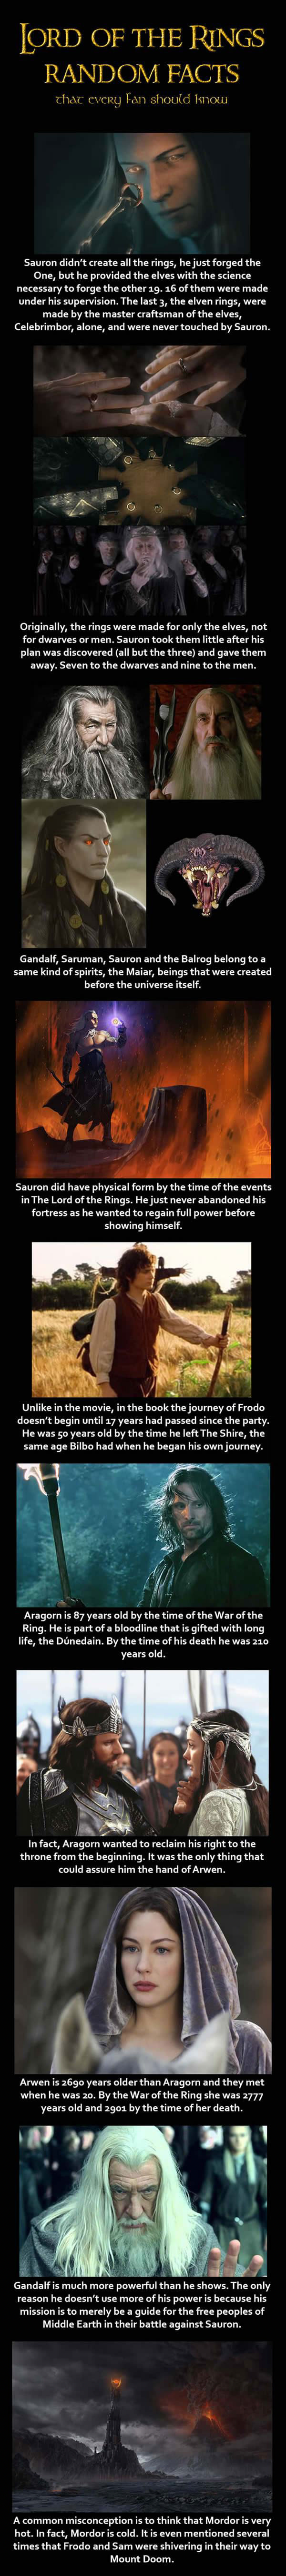 lord of the rings random facts